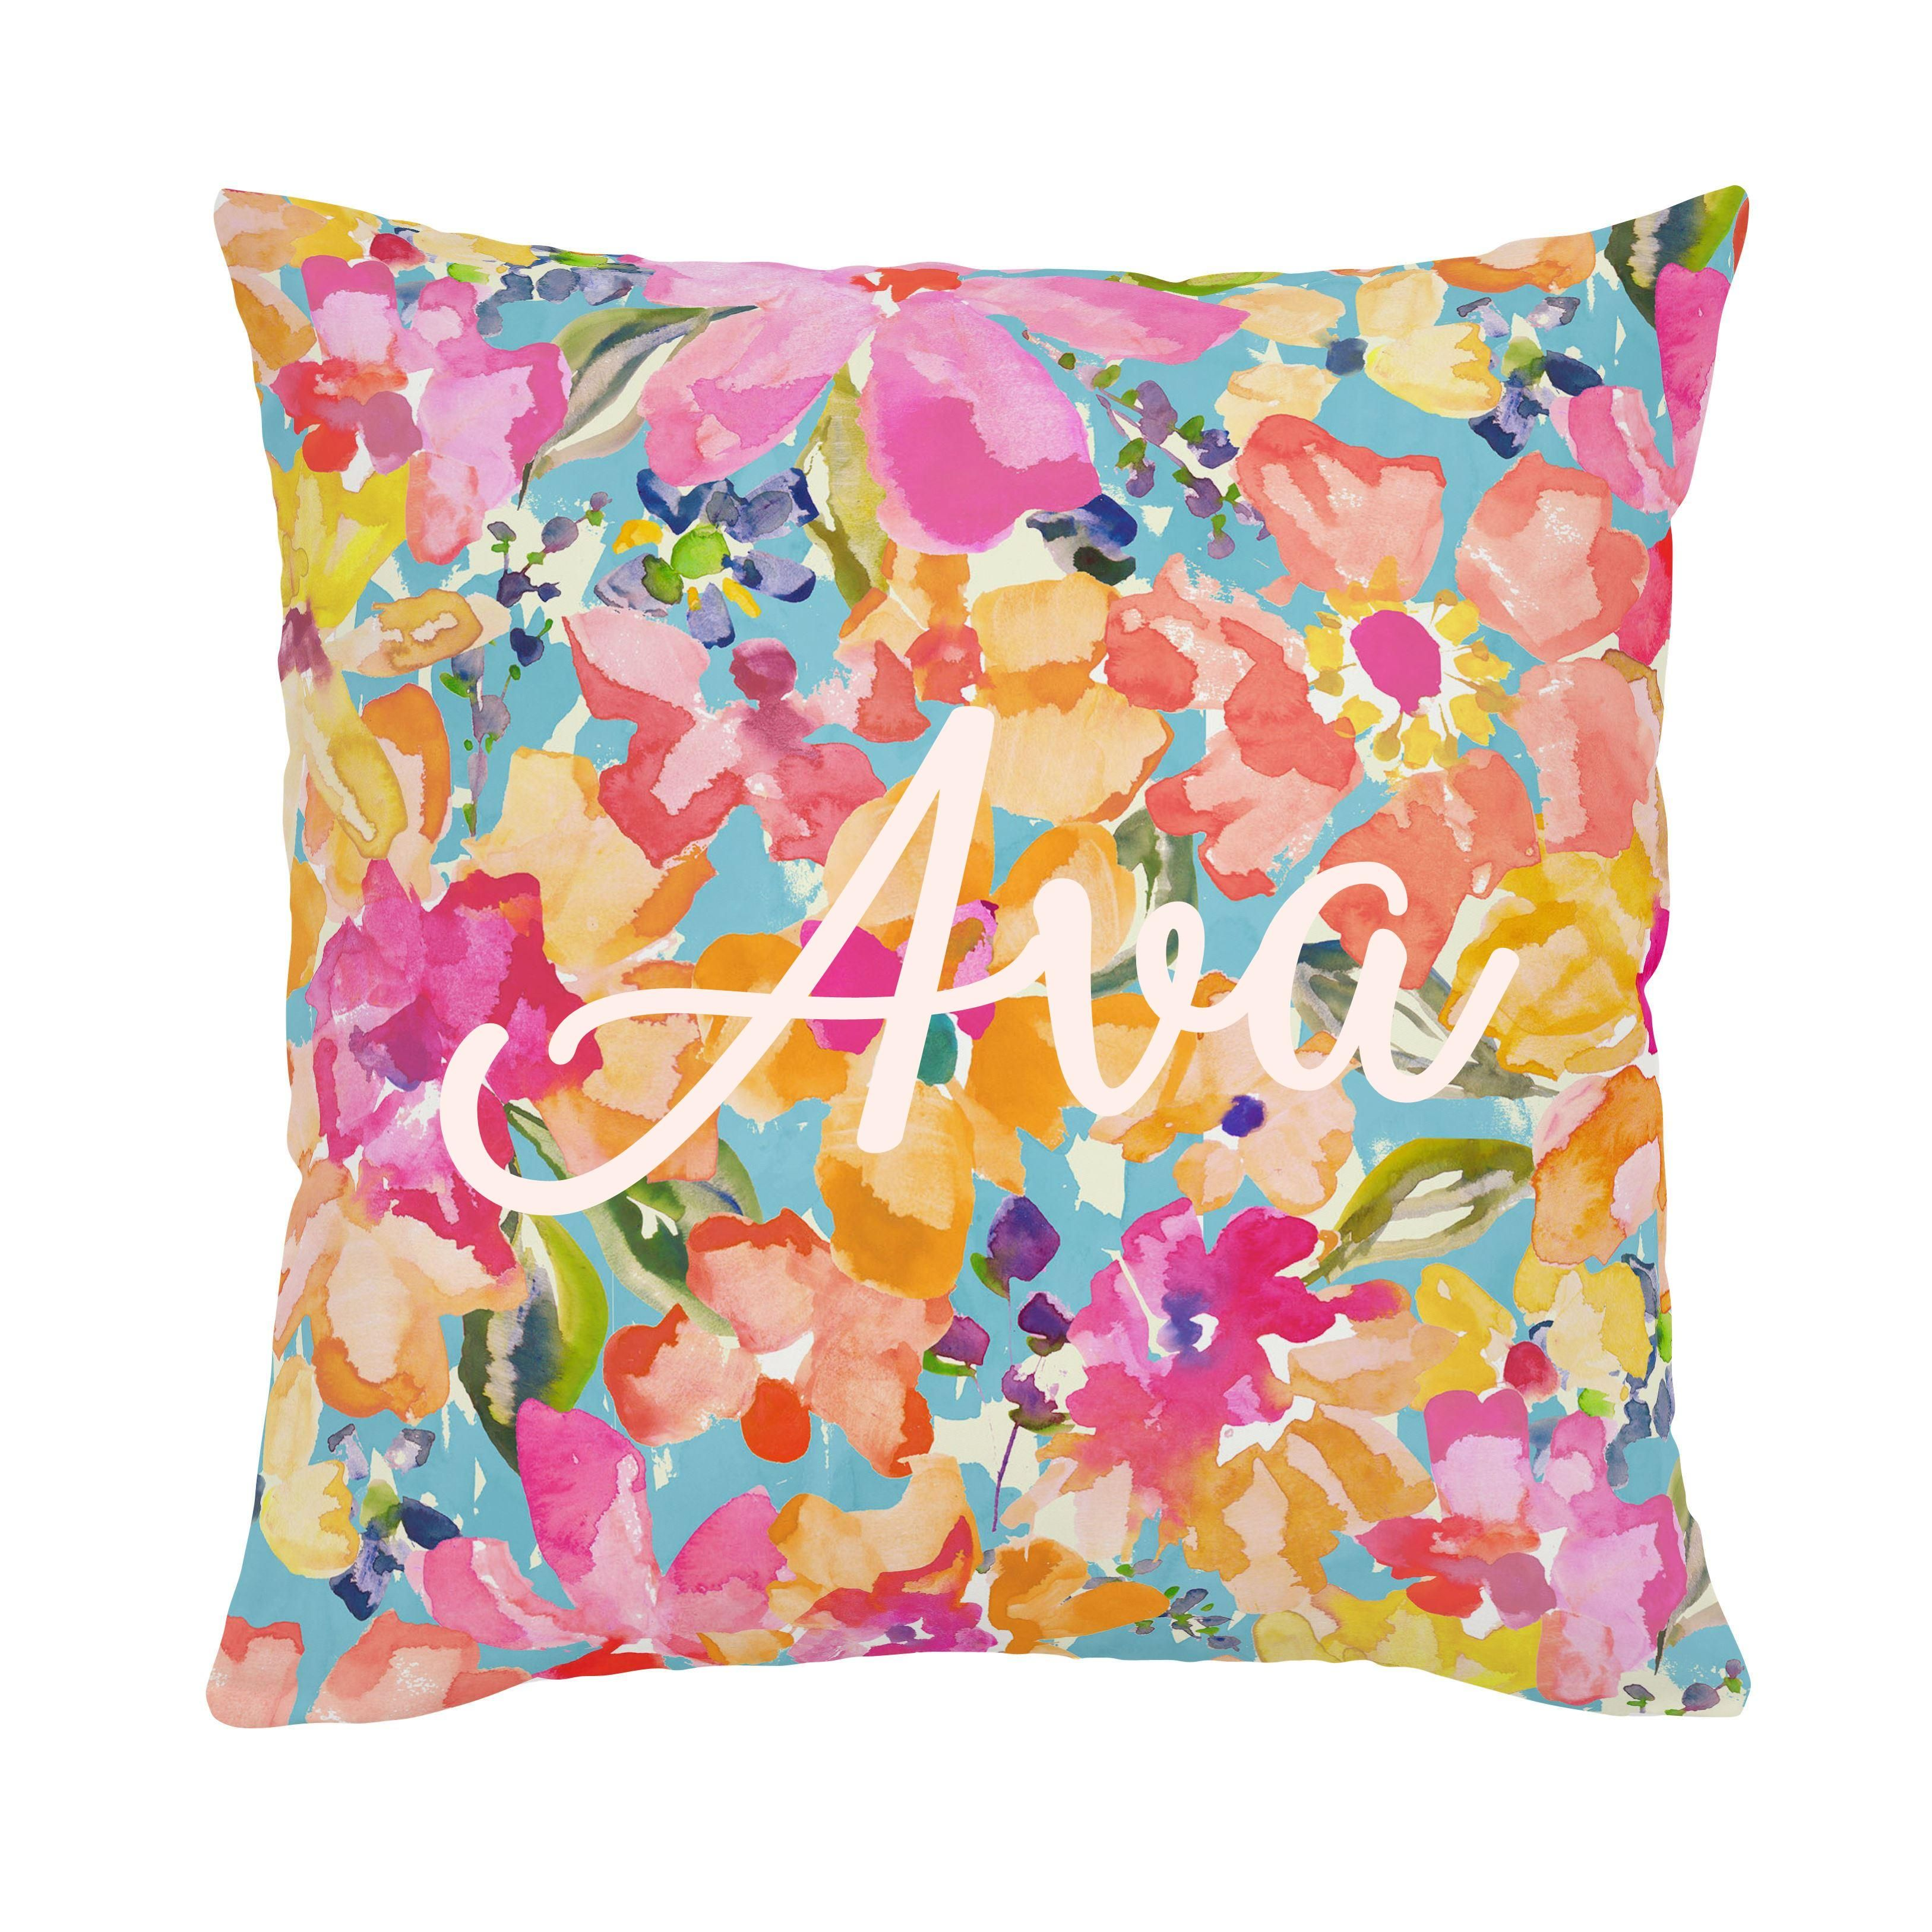 Design Your Own Organic Throw Pillow With Images Throw Pillows